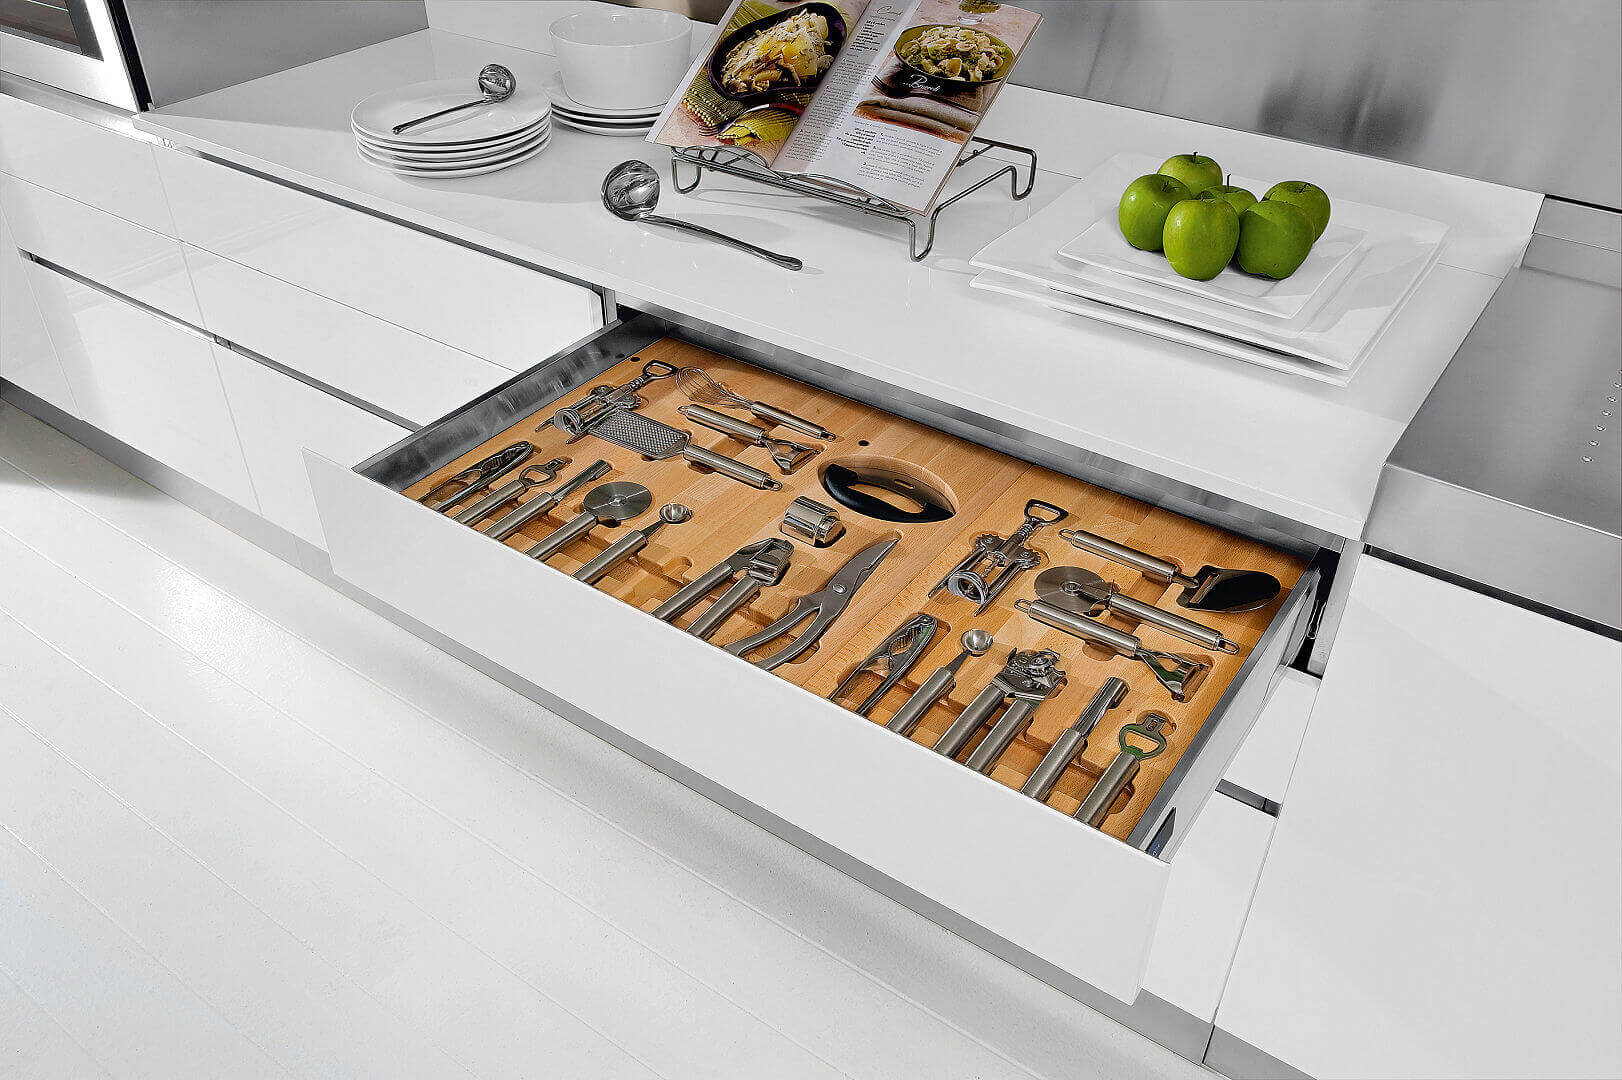 Arca Cucine Italy - Cutlery drawer port with Interior Wood and guides with closure Slowed